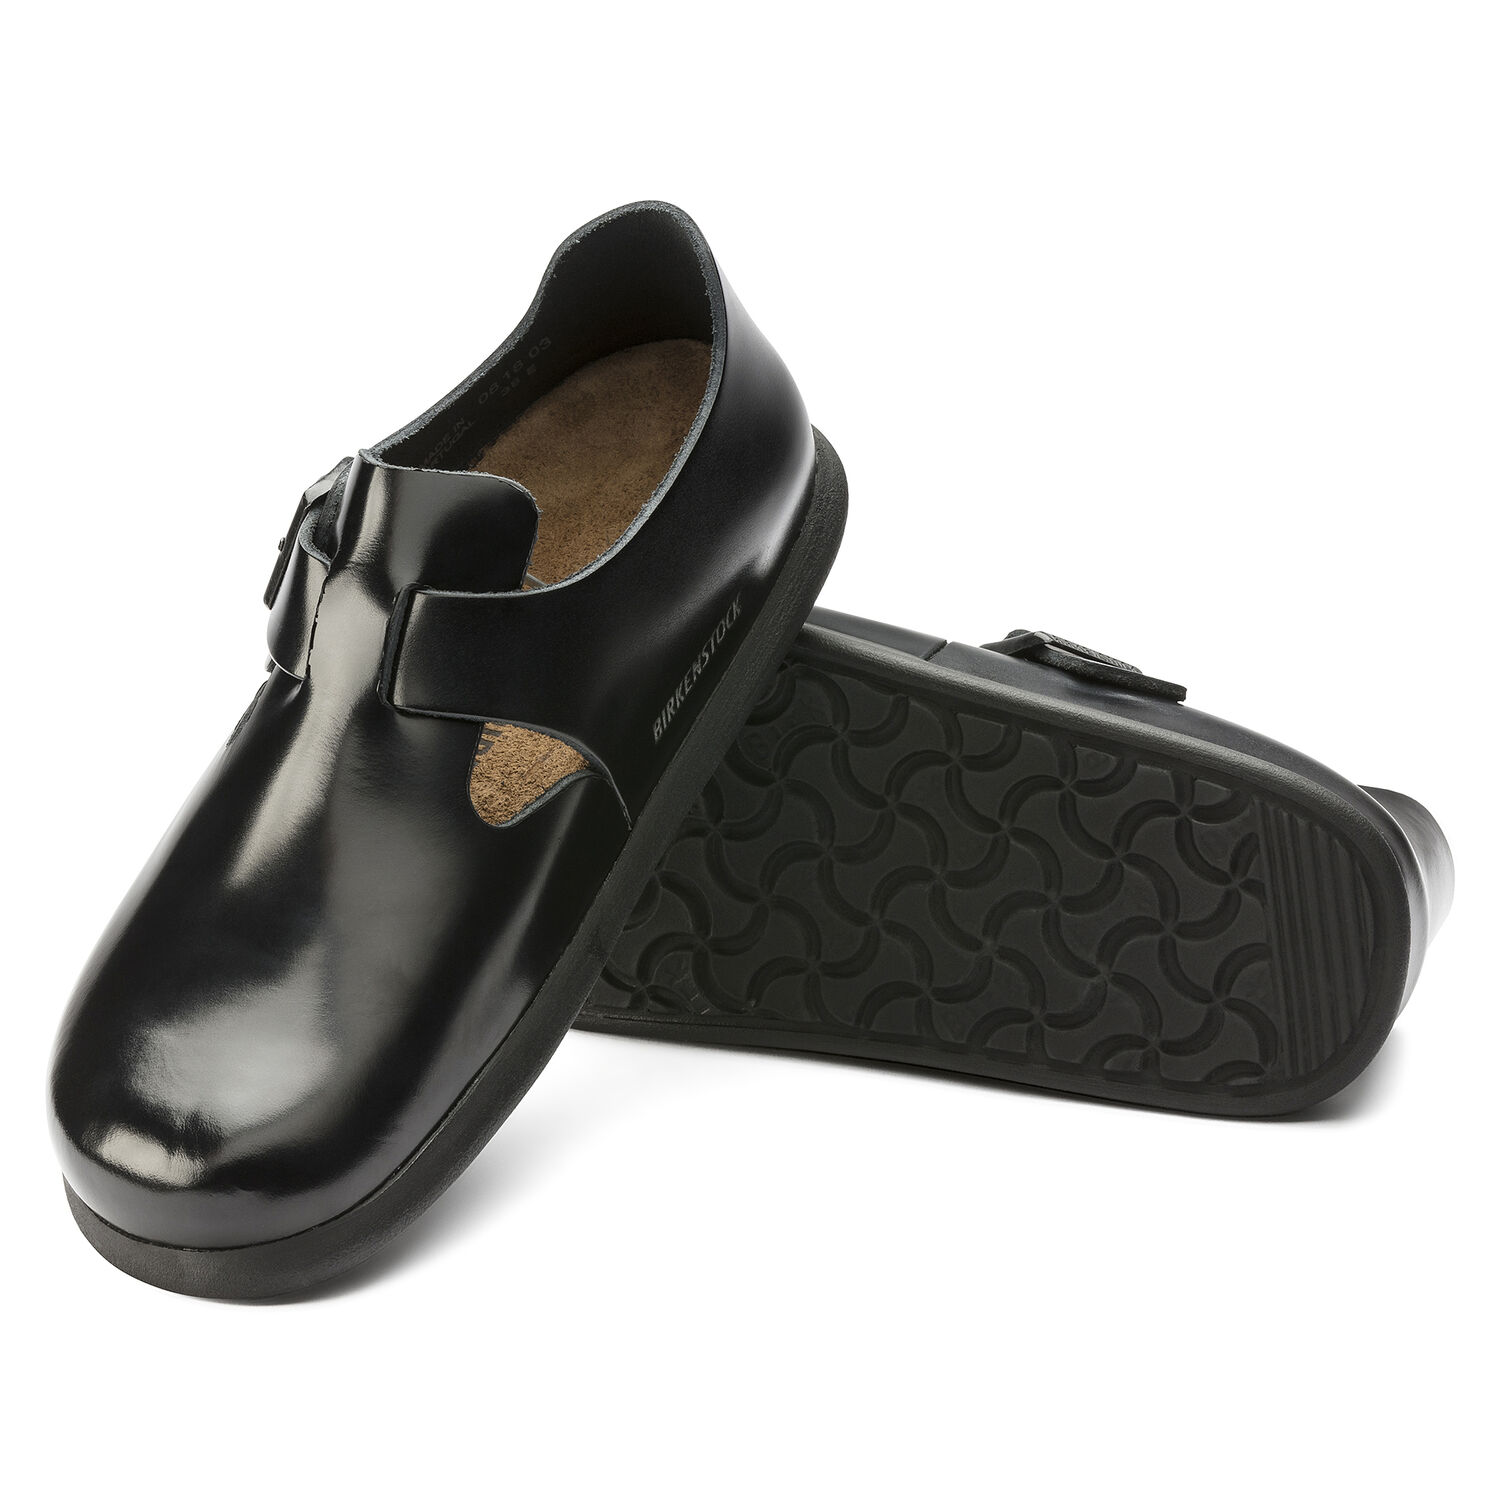 London Embossed Leather Patent